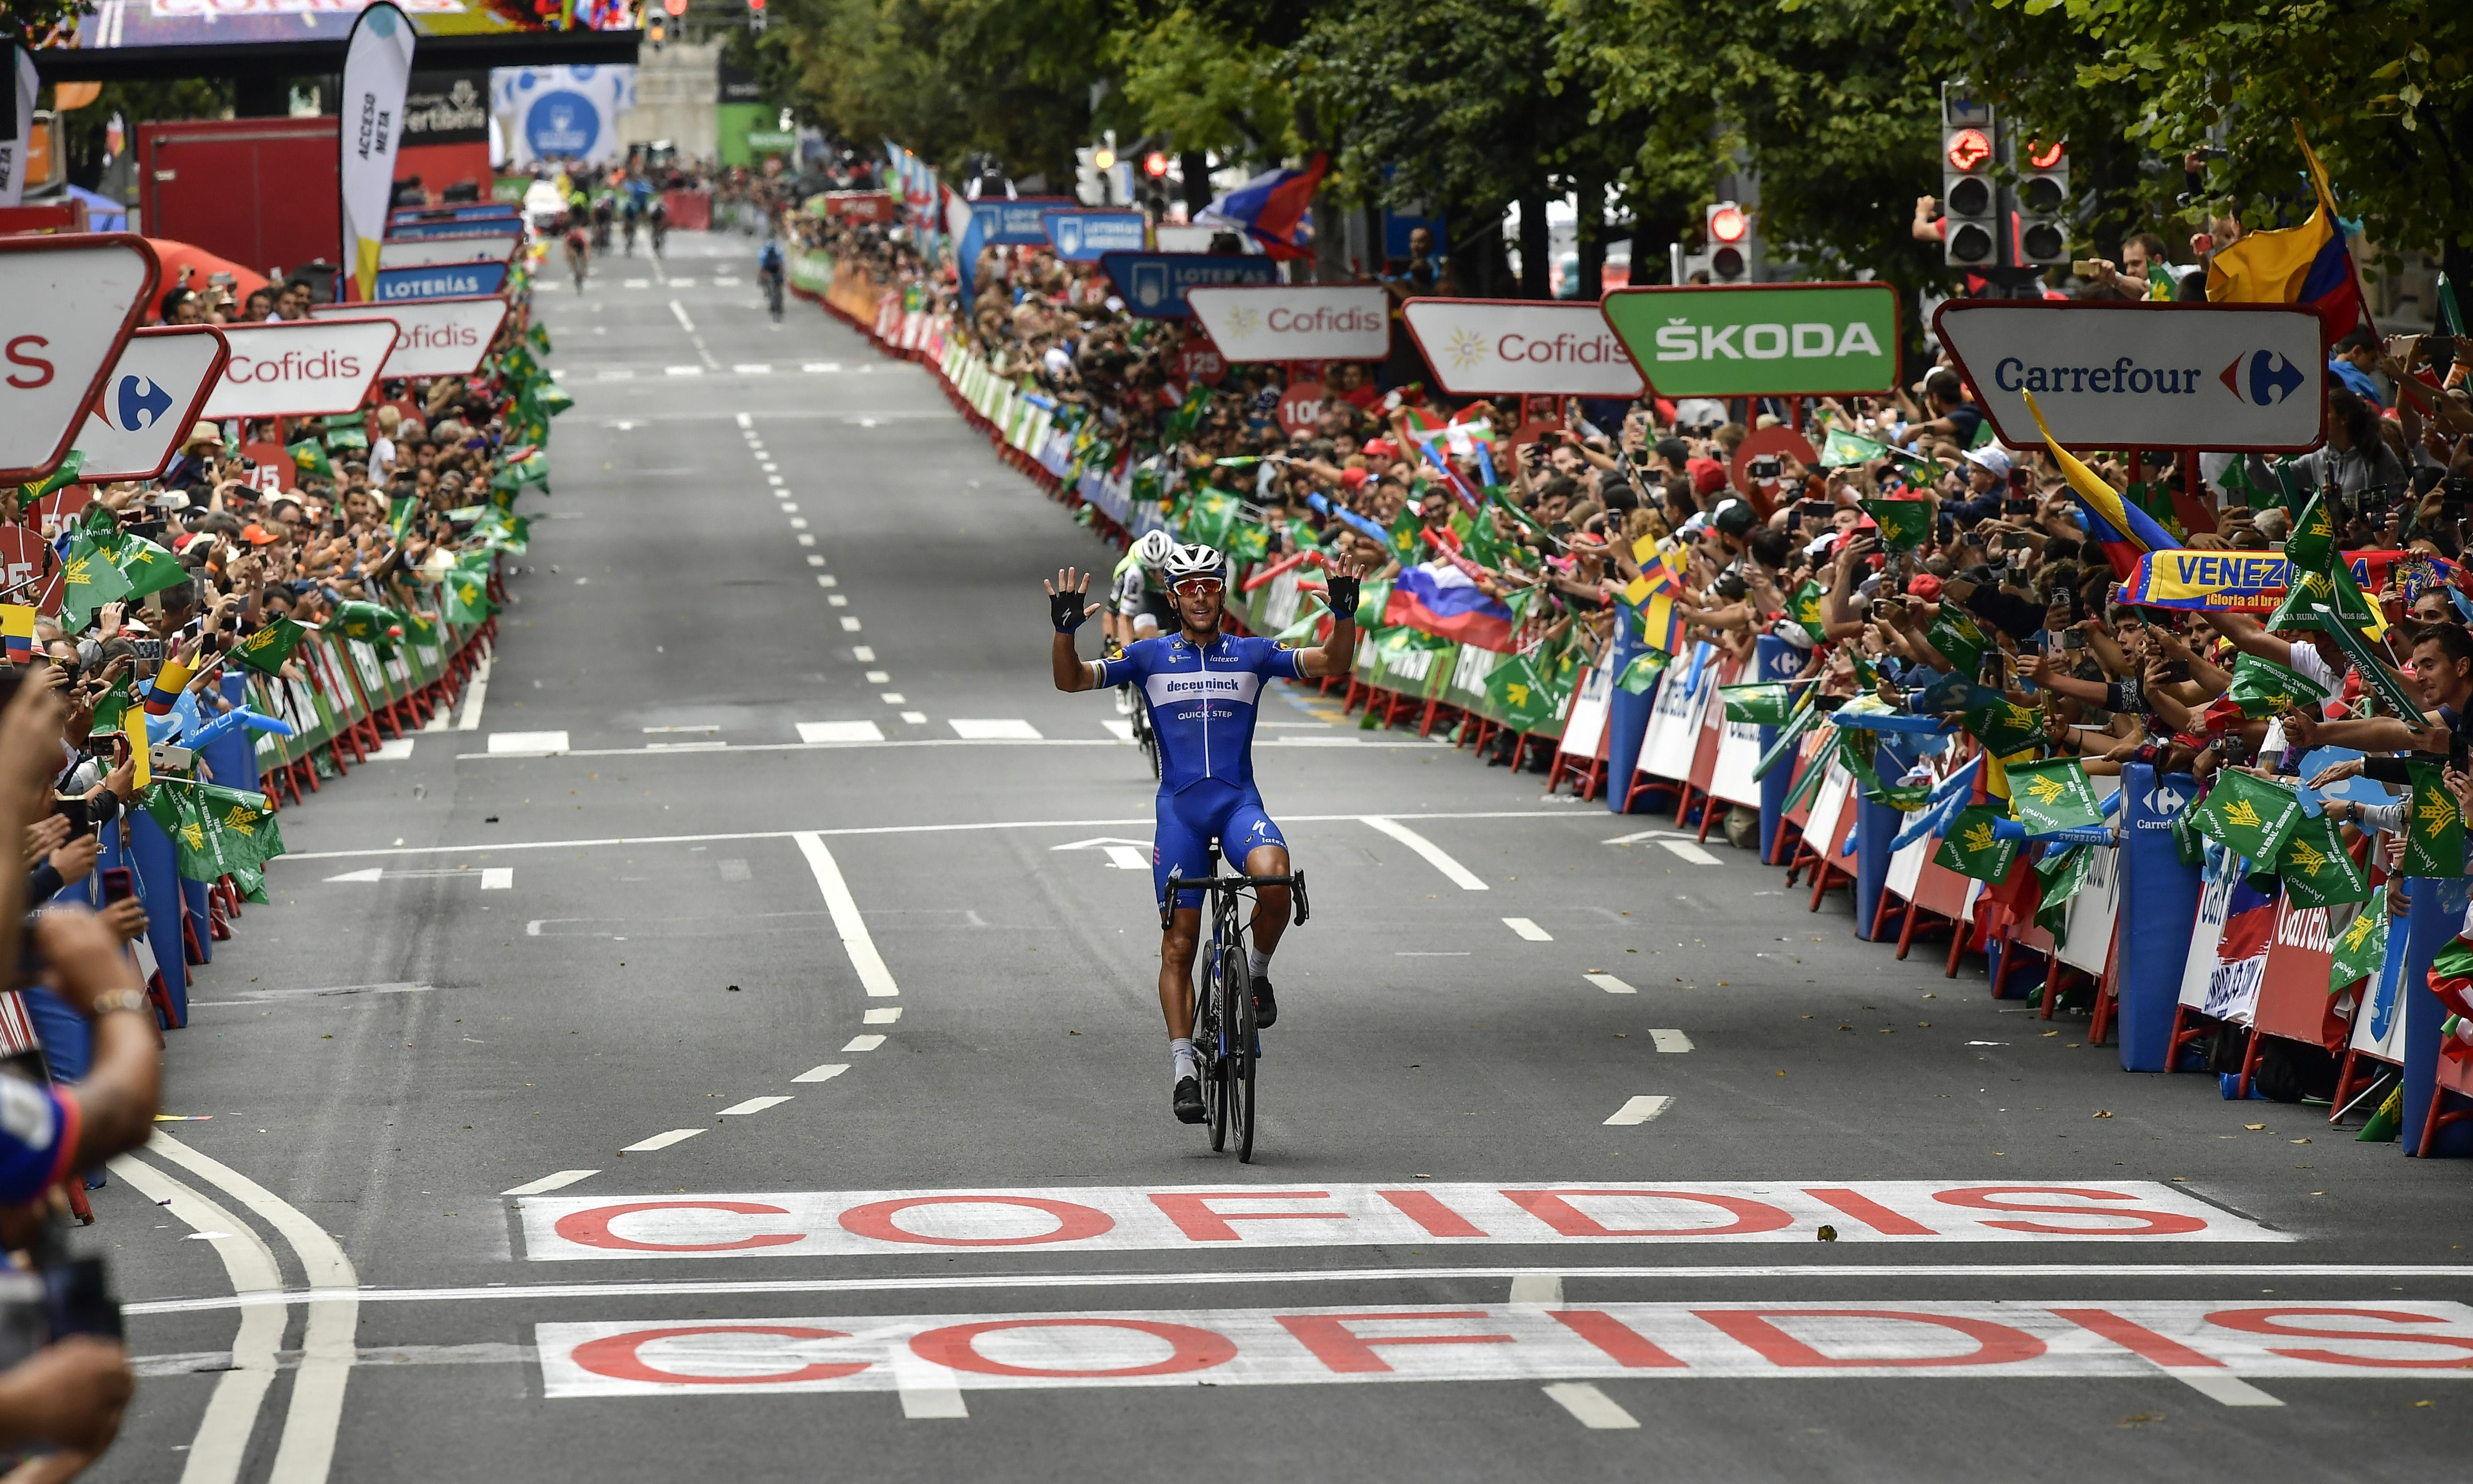 Vuelta a España: Philippe Gilbert's Bilbao brilliance earns stage 12 win